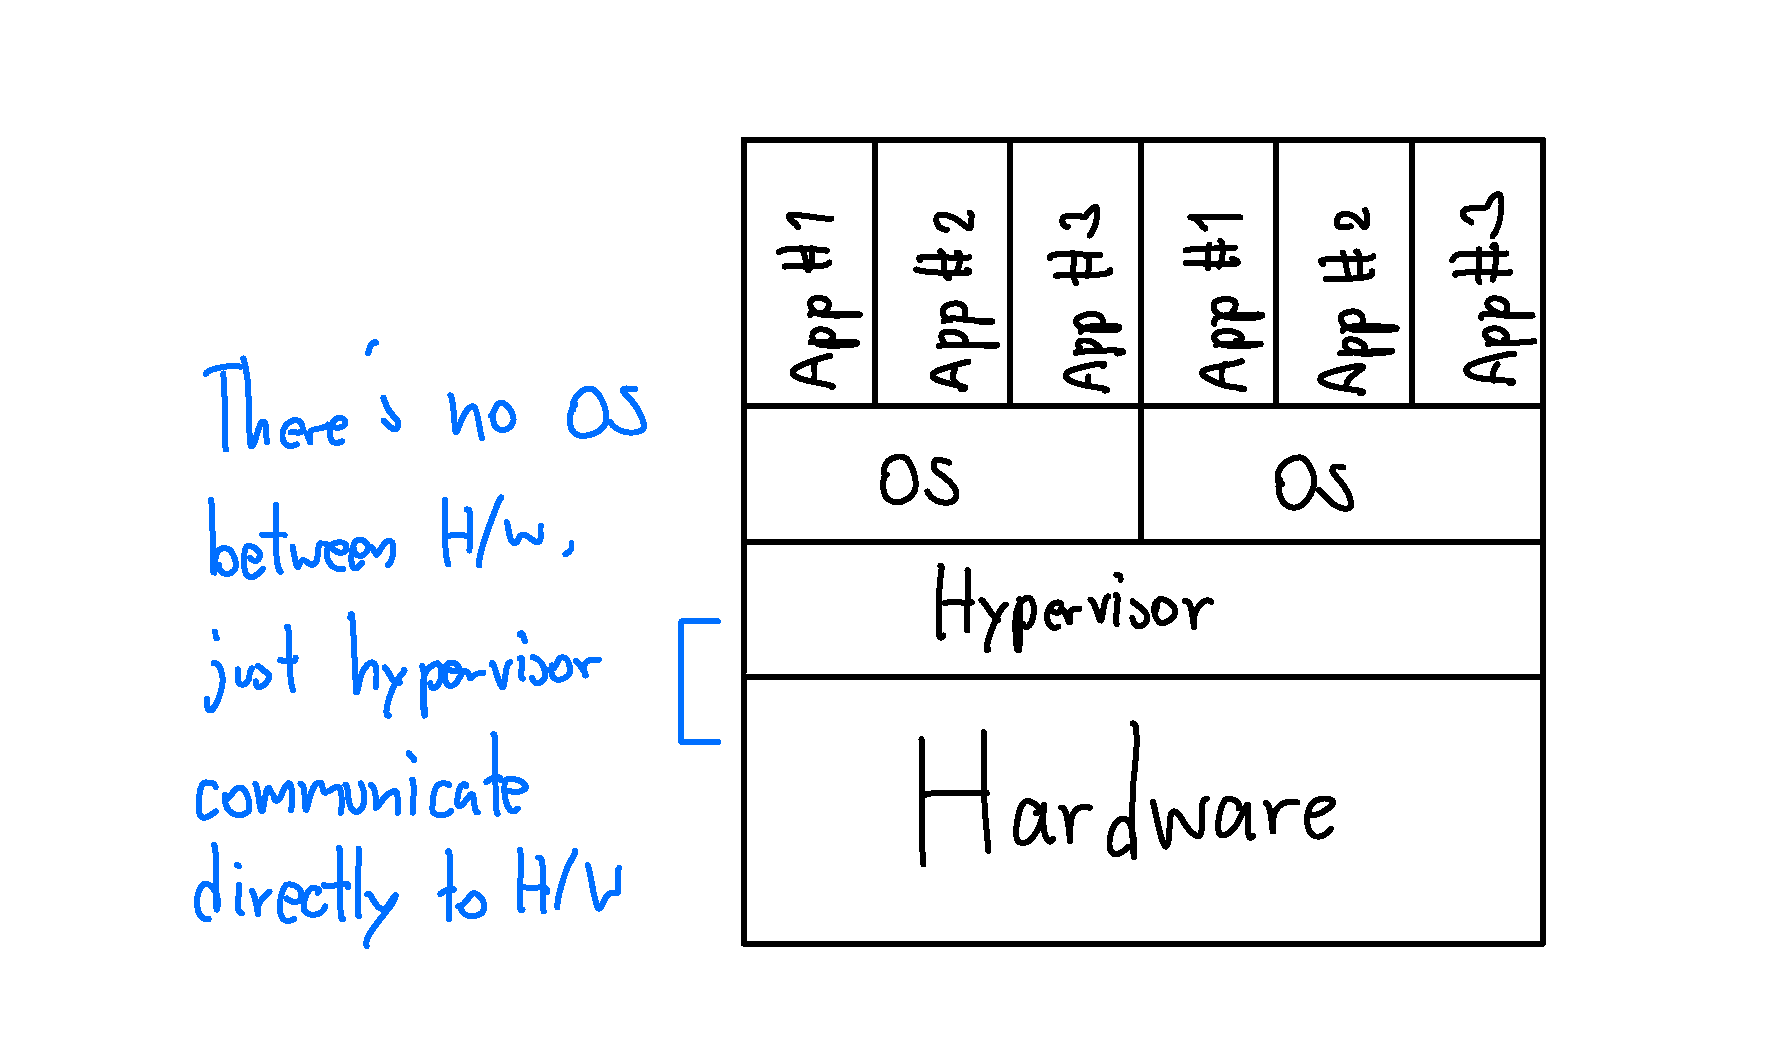 Virtual Machine Type 1 Hypervisor